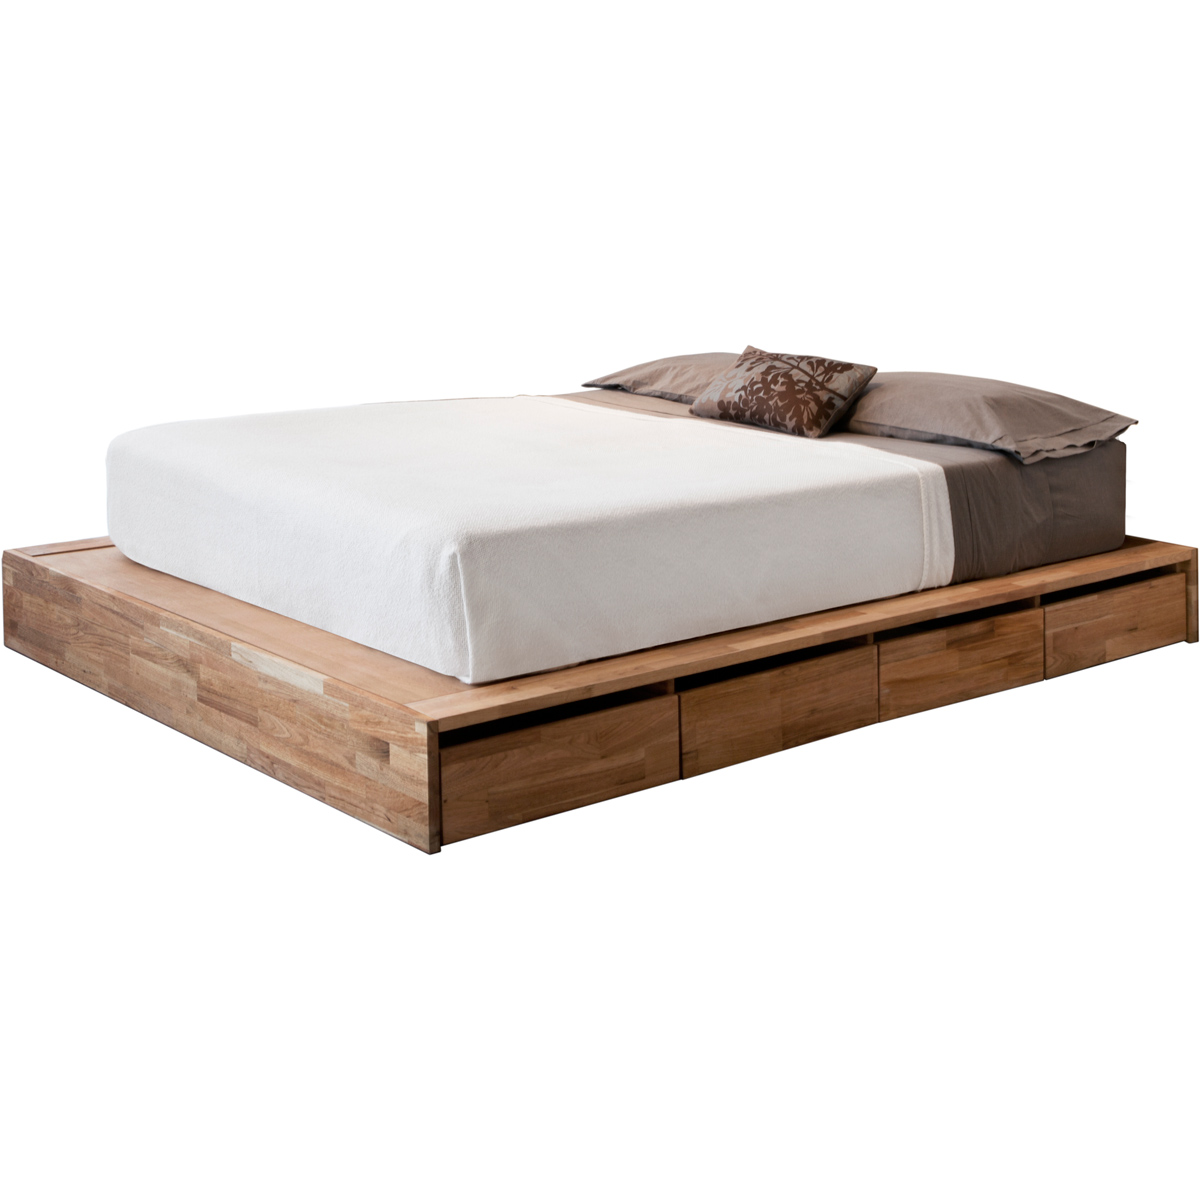 The Comfortable and Beautiful Designs of IKEA Bed Frame with ...